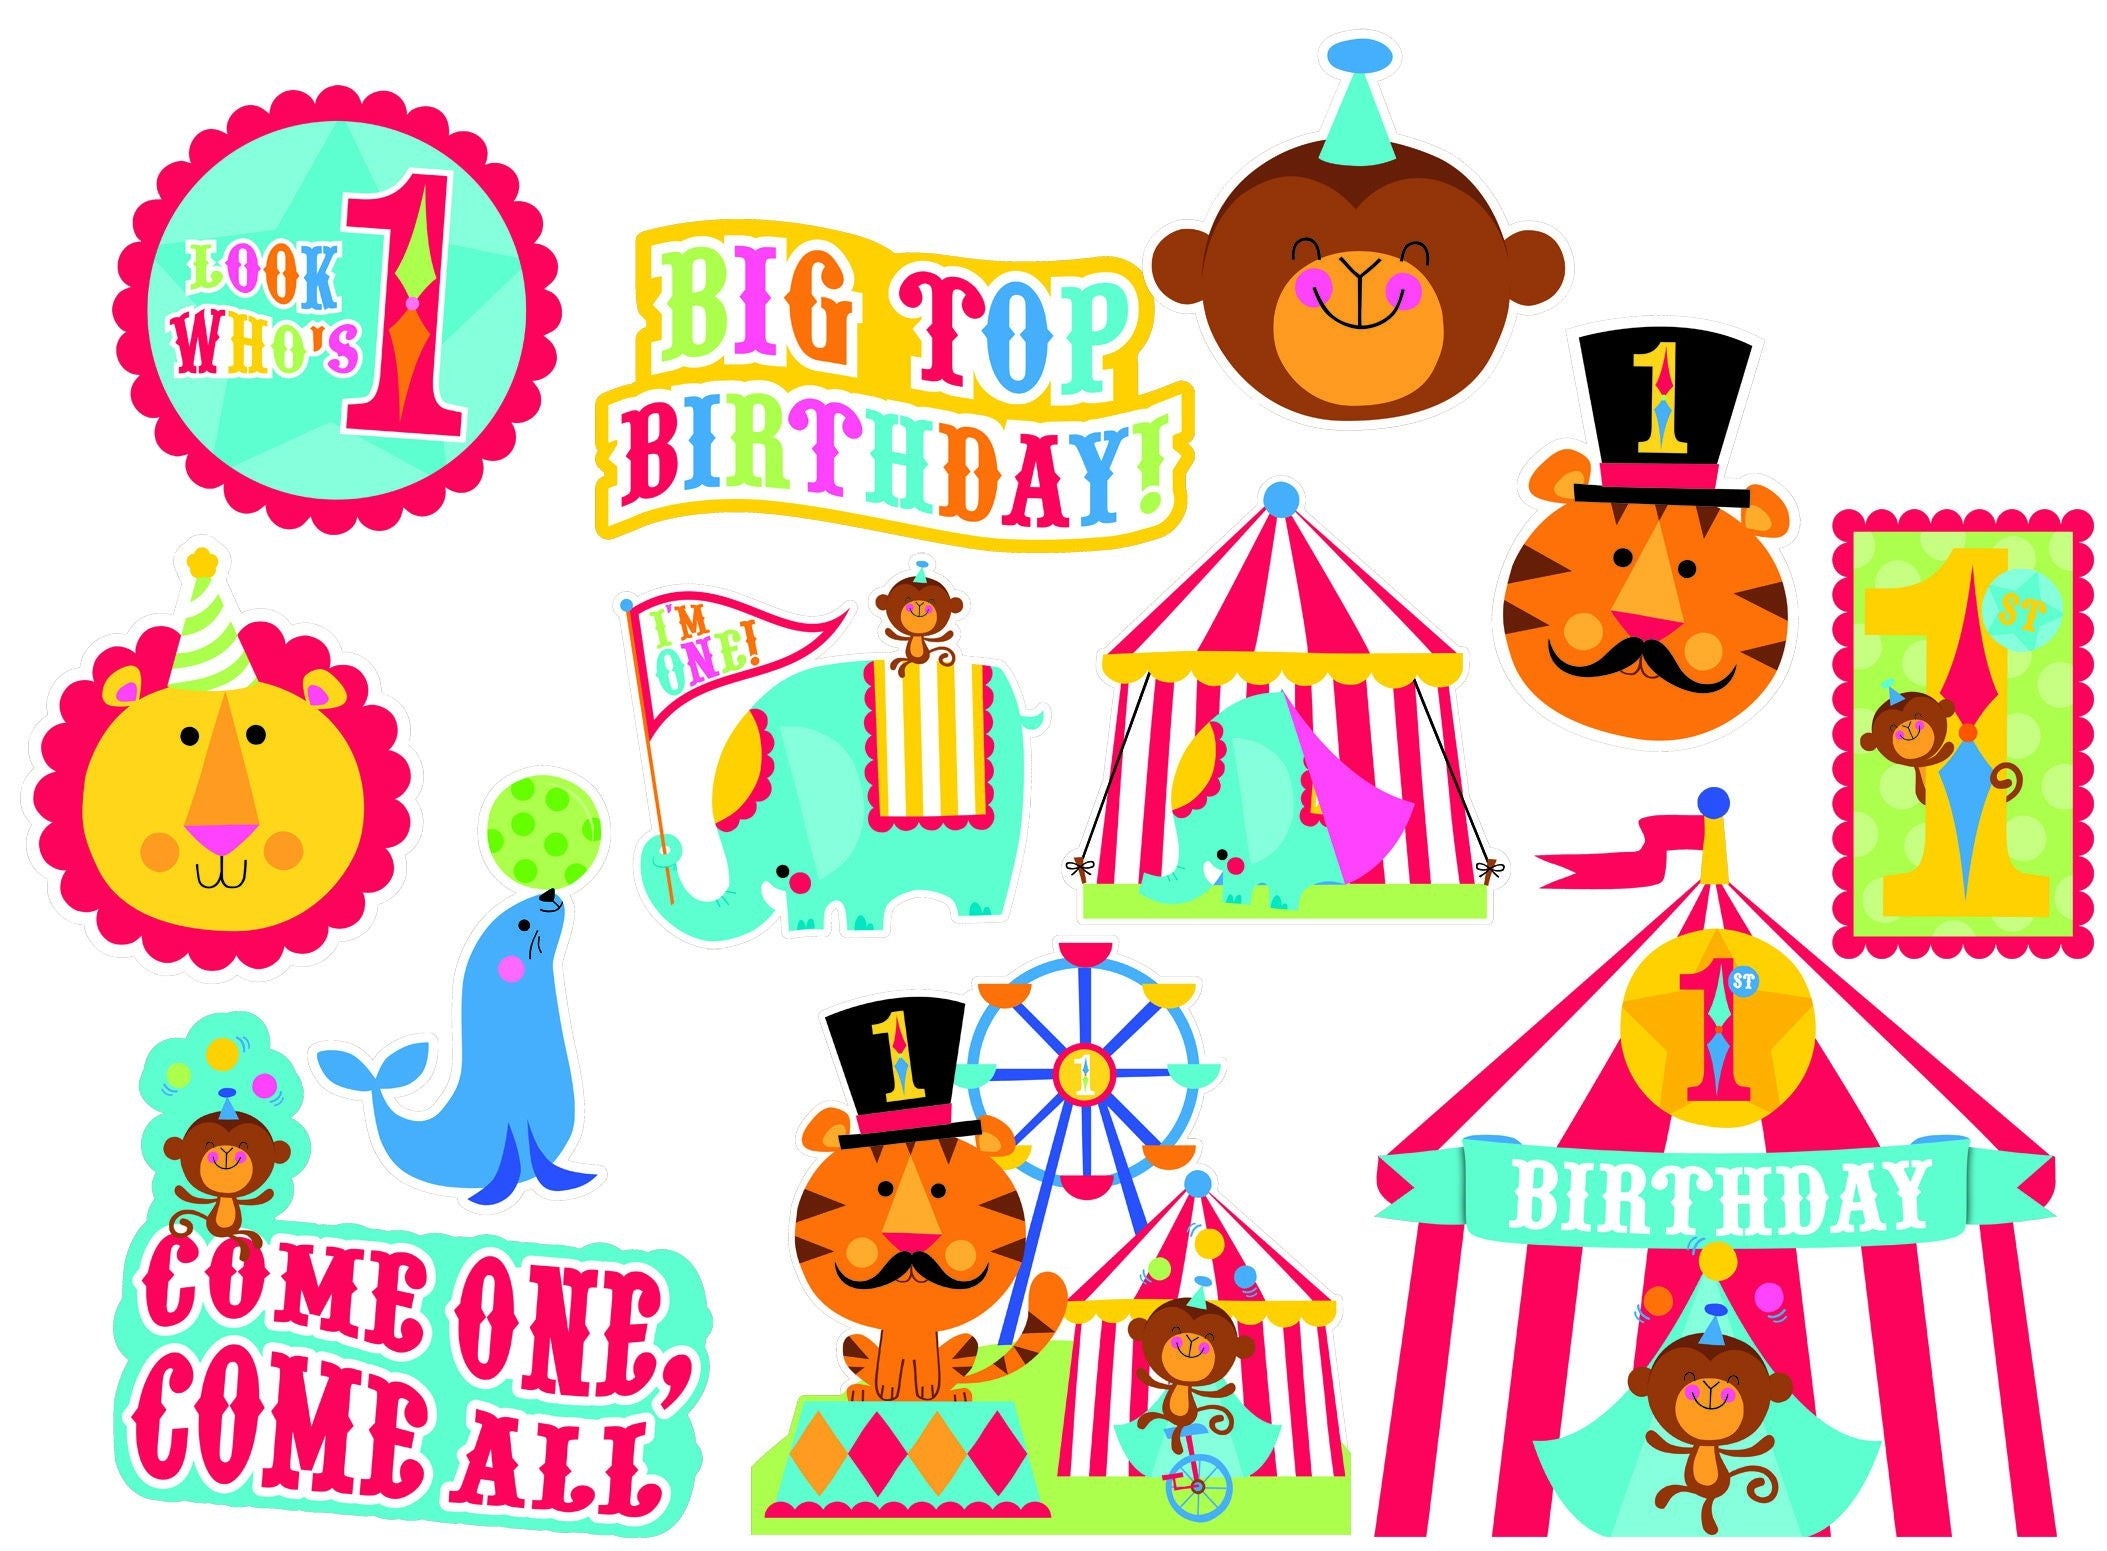 Fisher Price 1st Birthday Circus Value Pack Printed Paper Cardboard Cutouts 12pk